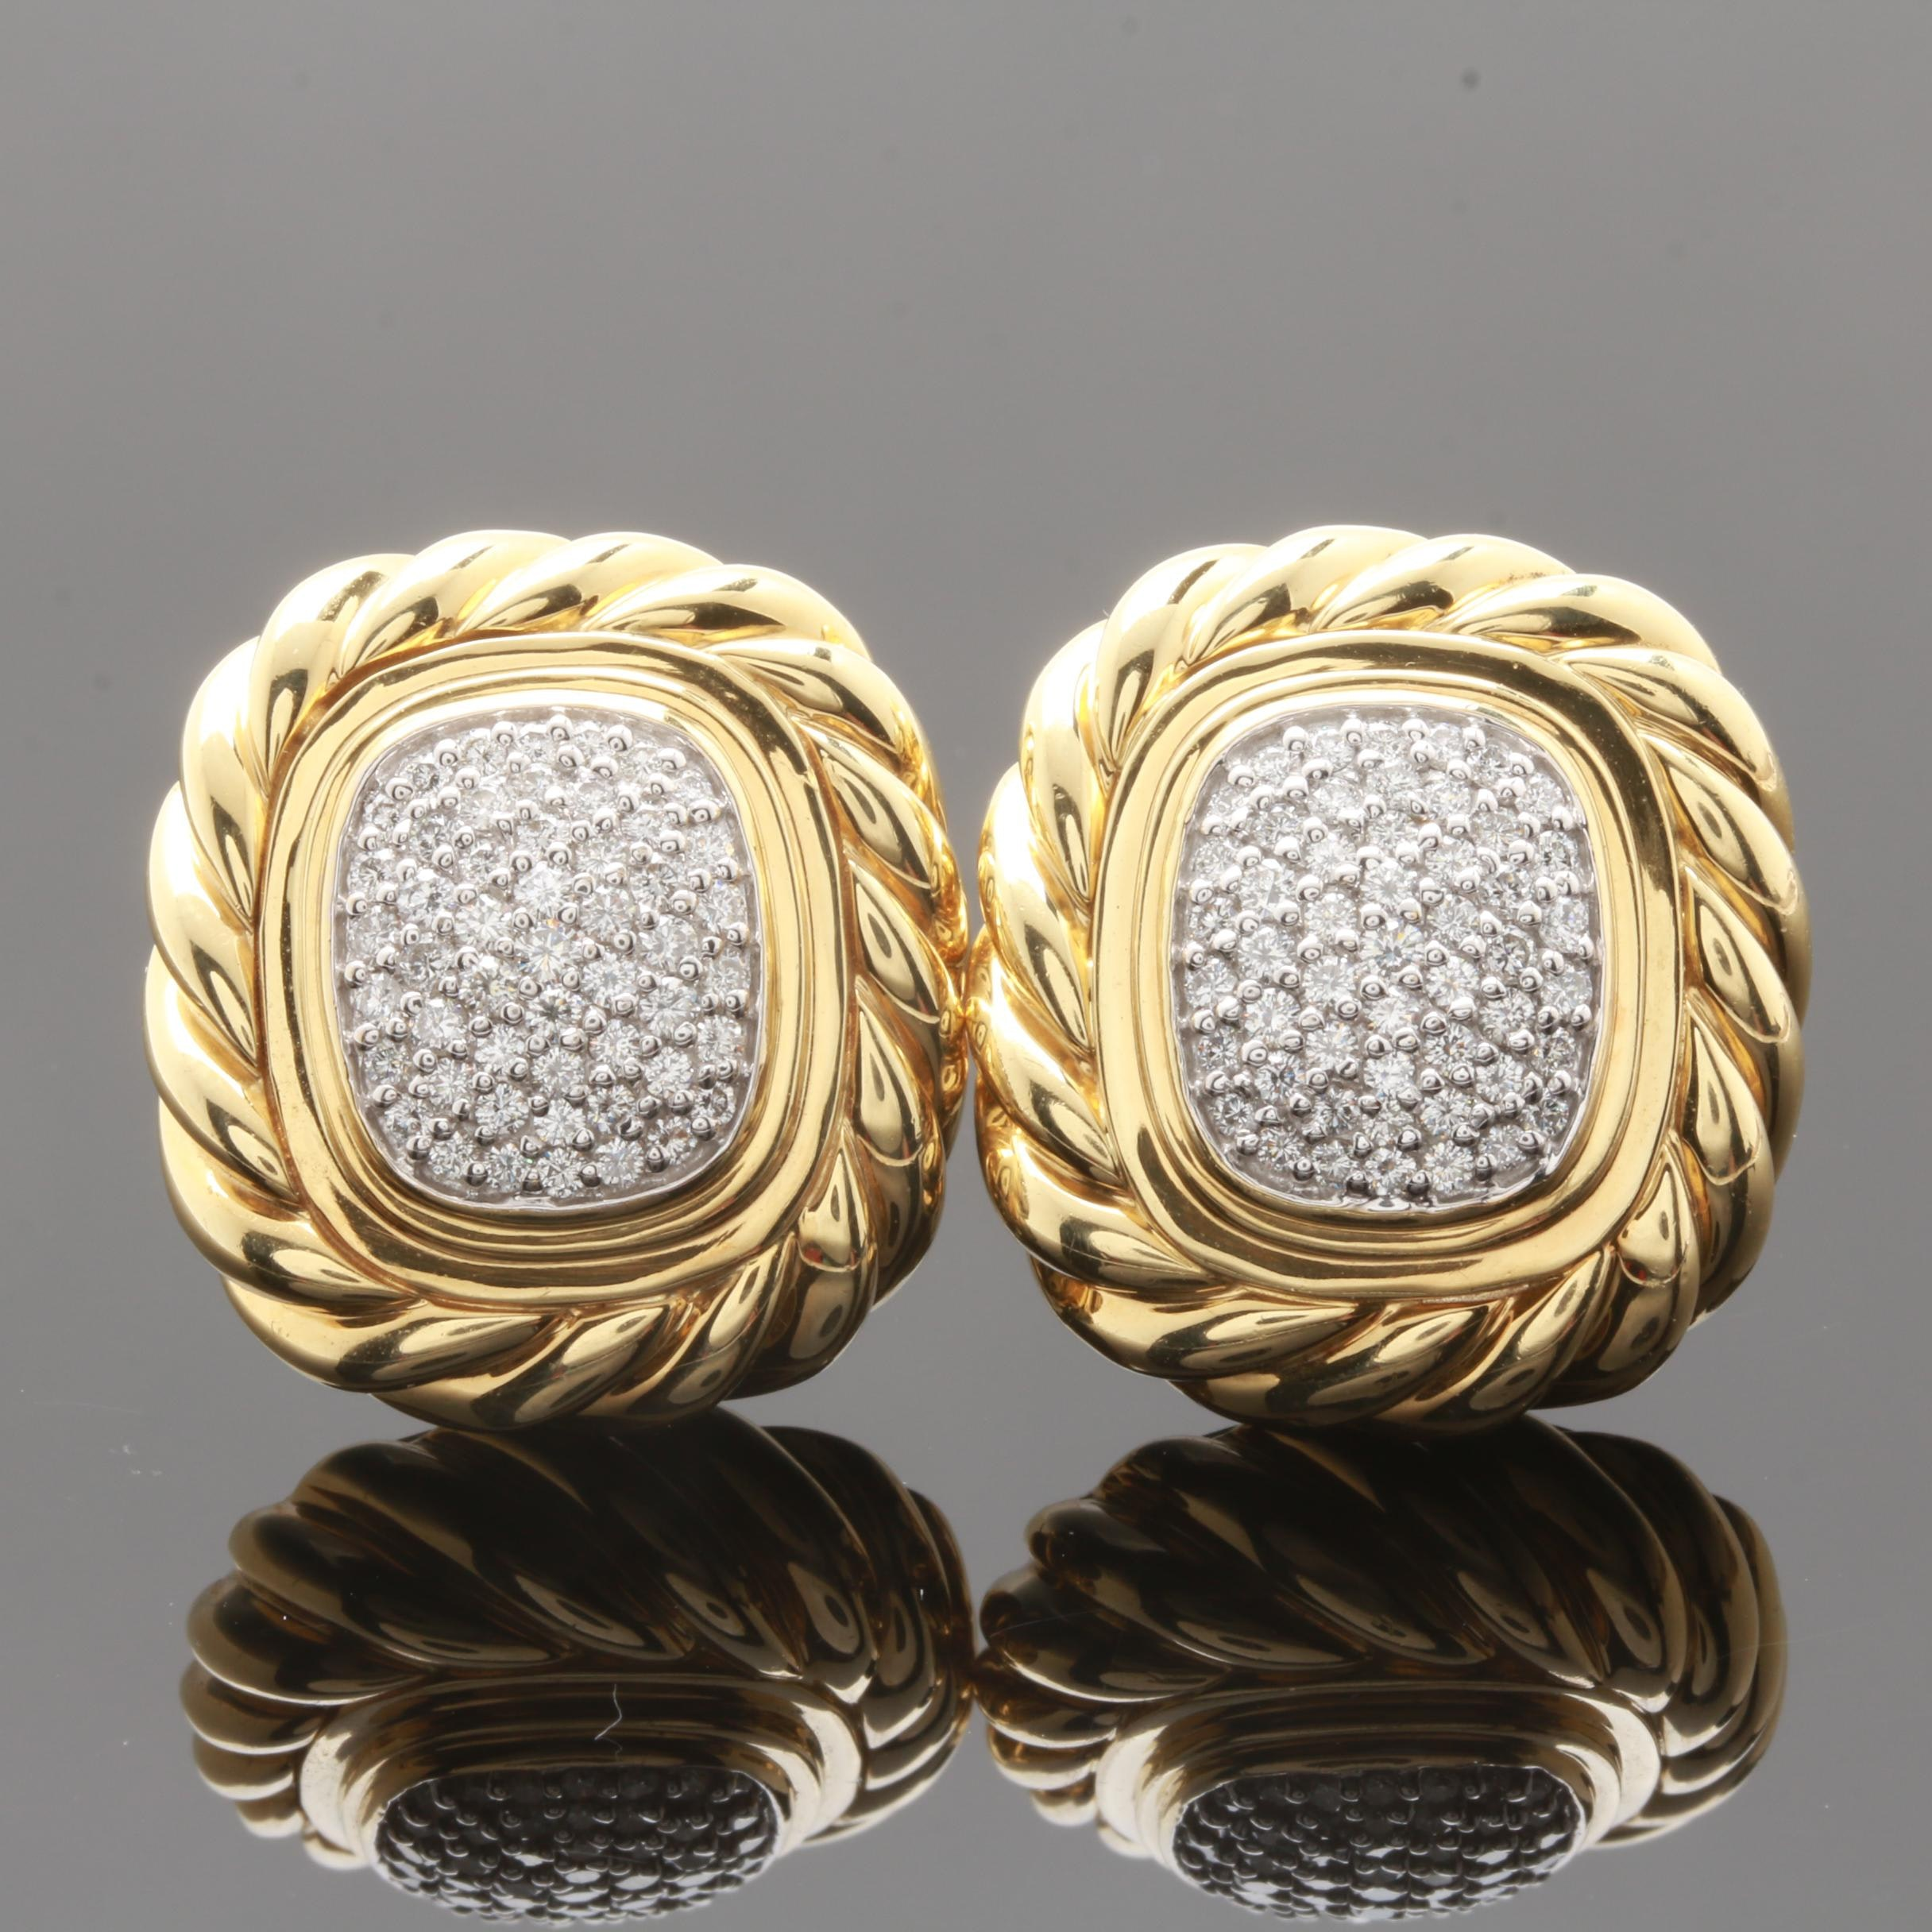 David Yurman 18K Yellow Gold 1.25 CTW Diamond Earrings